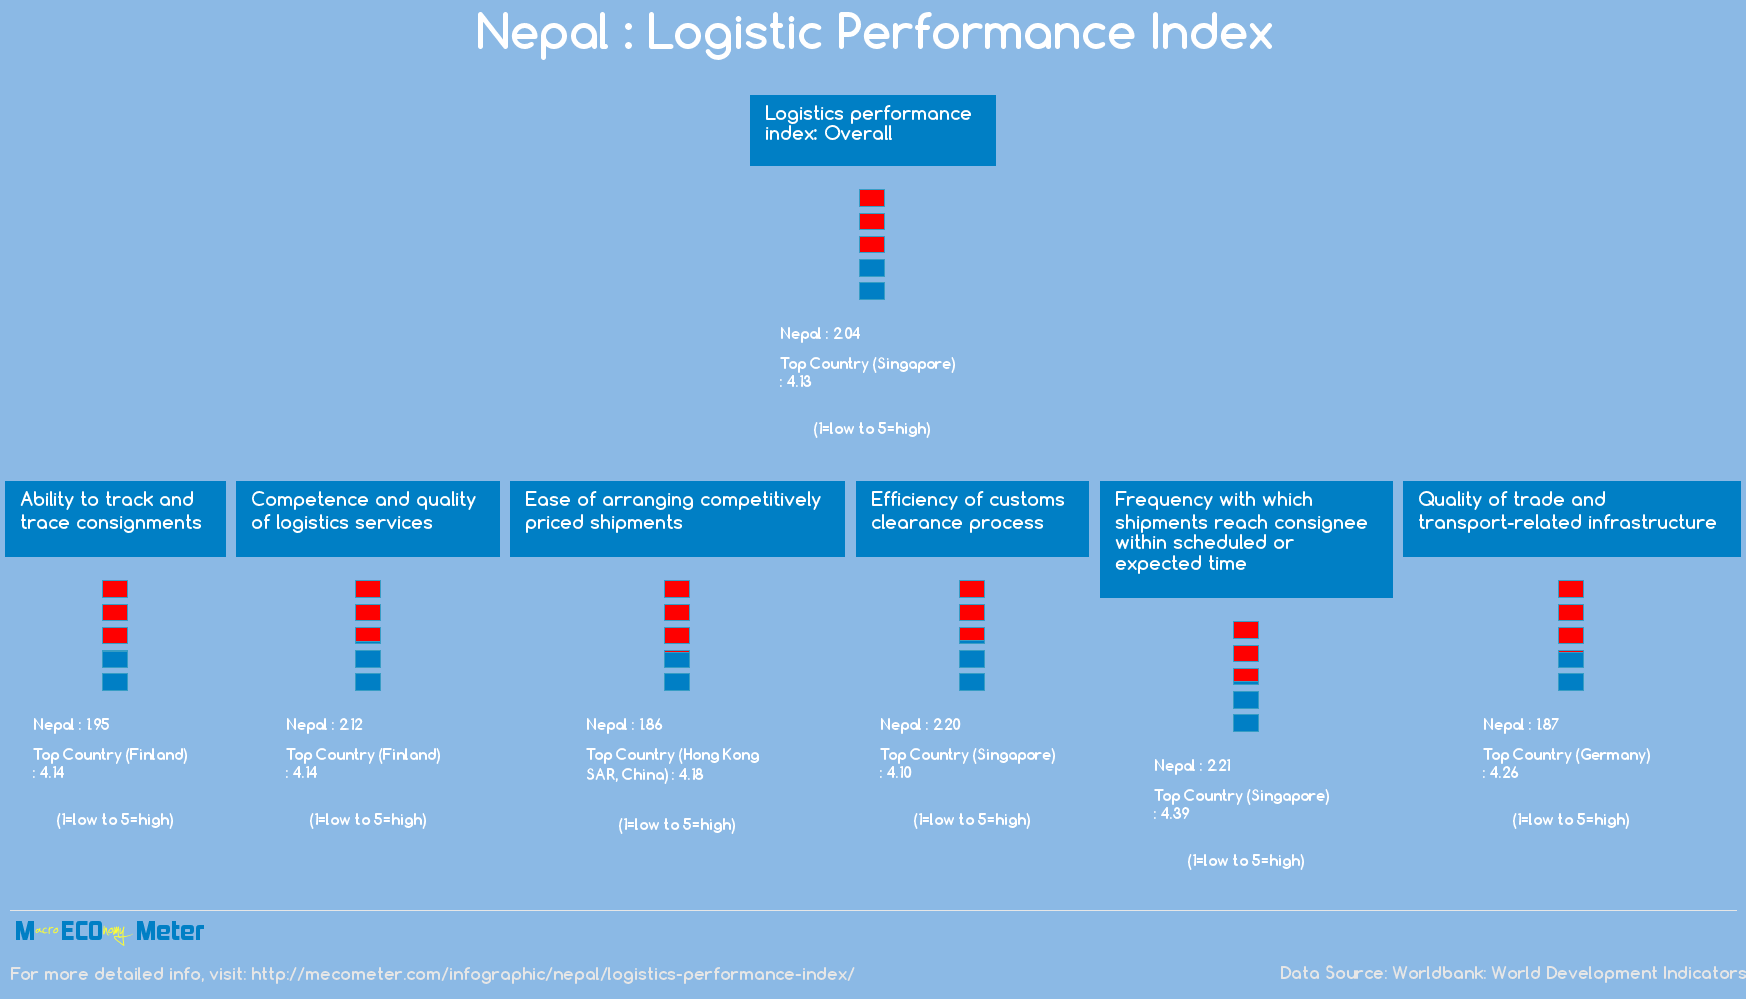 Nepal : Logistic Performance Index